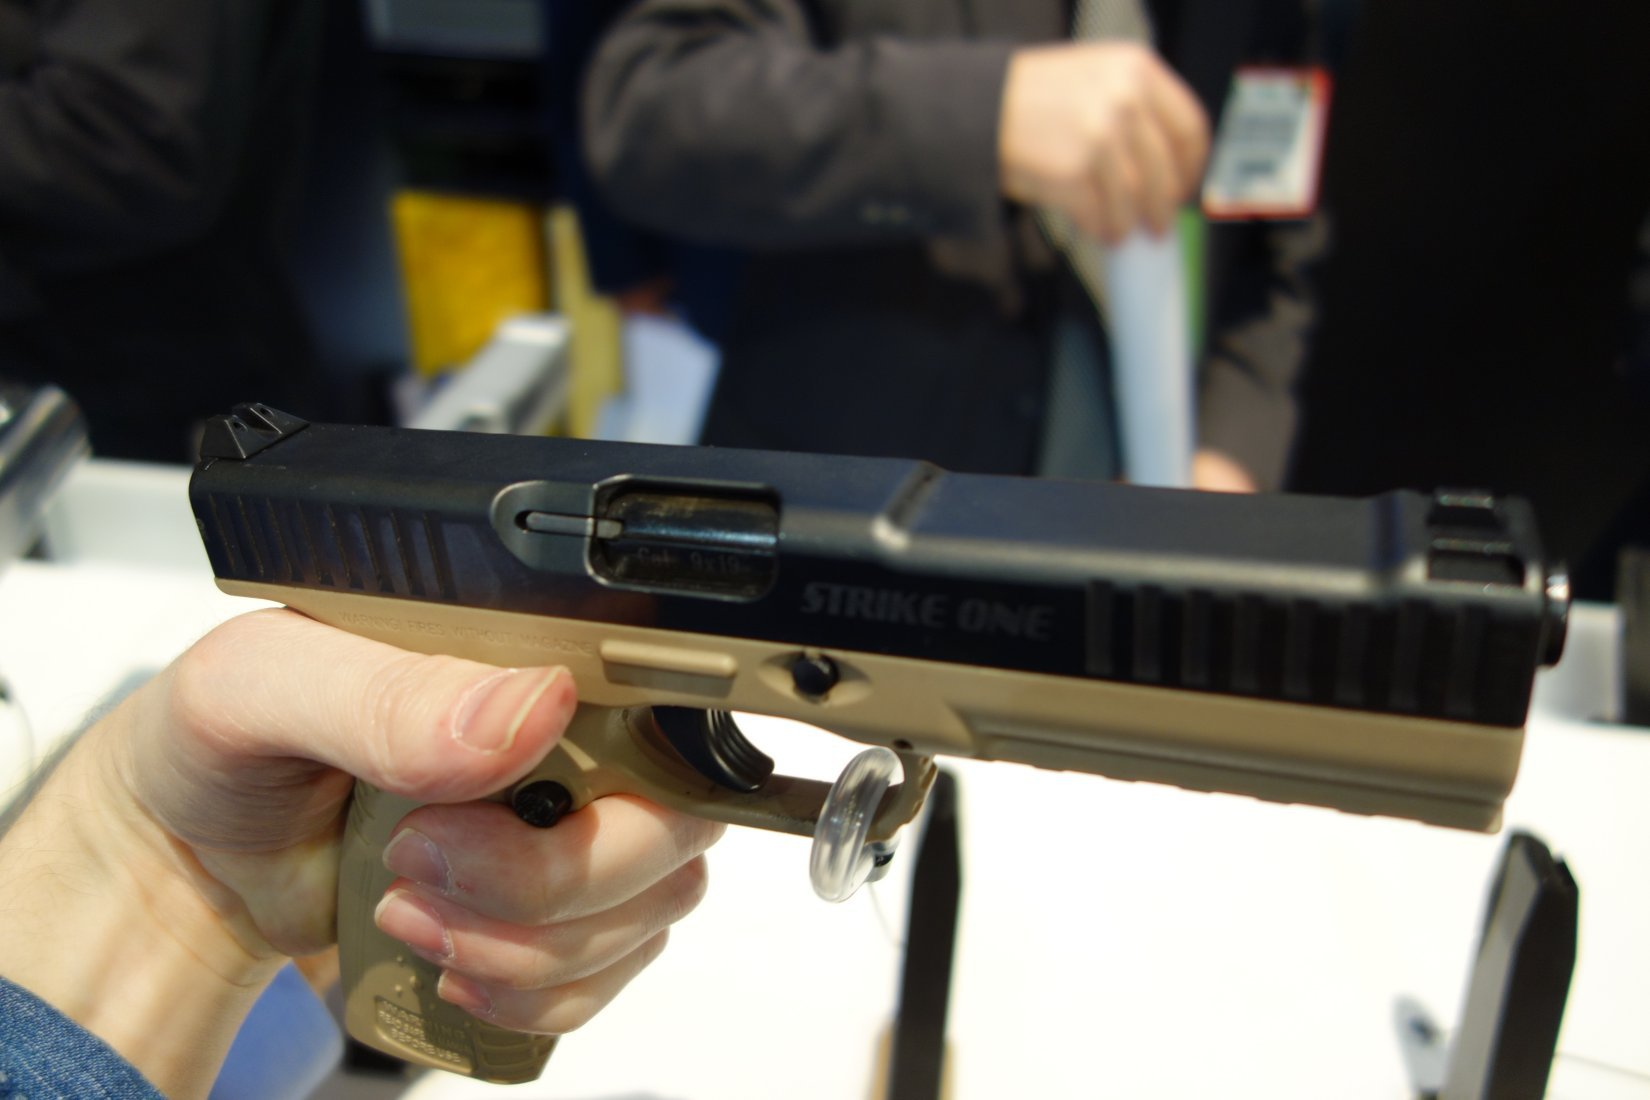 Arsenal Firearms Strike One Pistol System Internal Parts and Operating Mechanism Shown and Explained at SHOT Show 2013 (Video!)